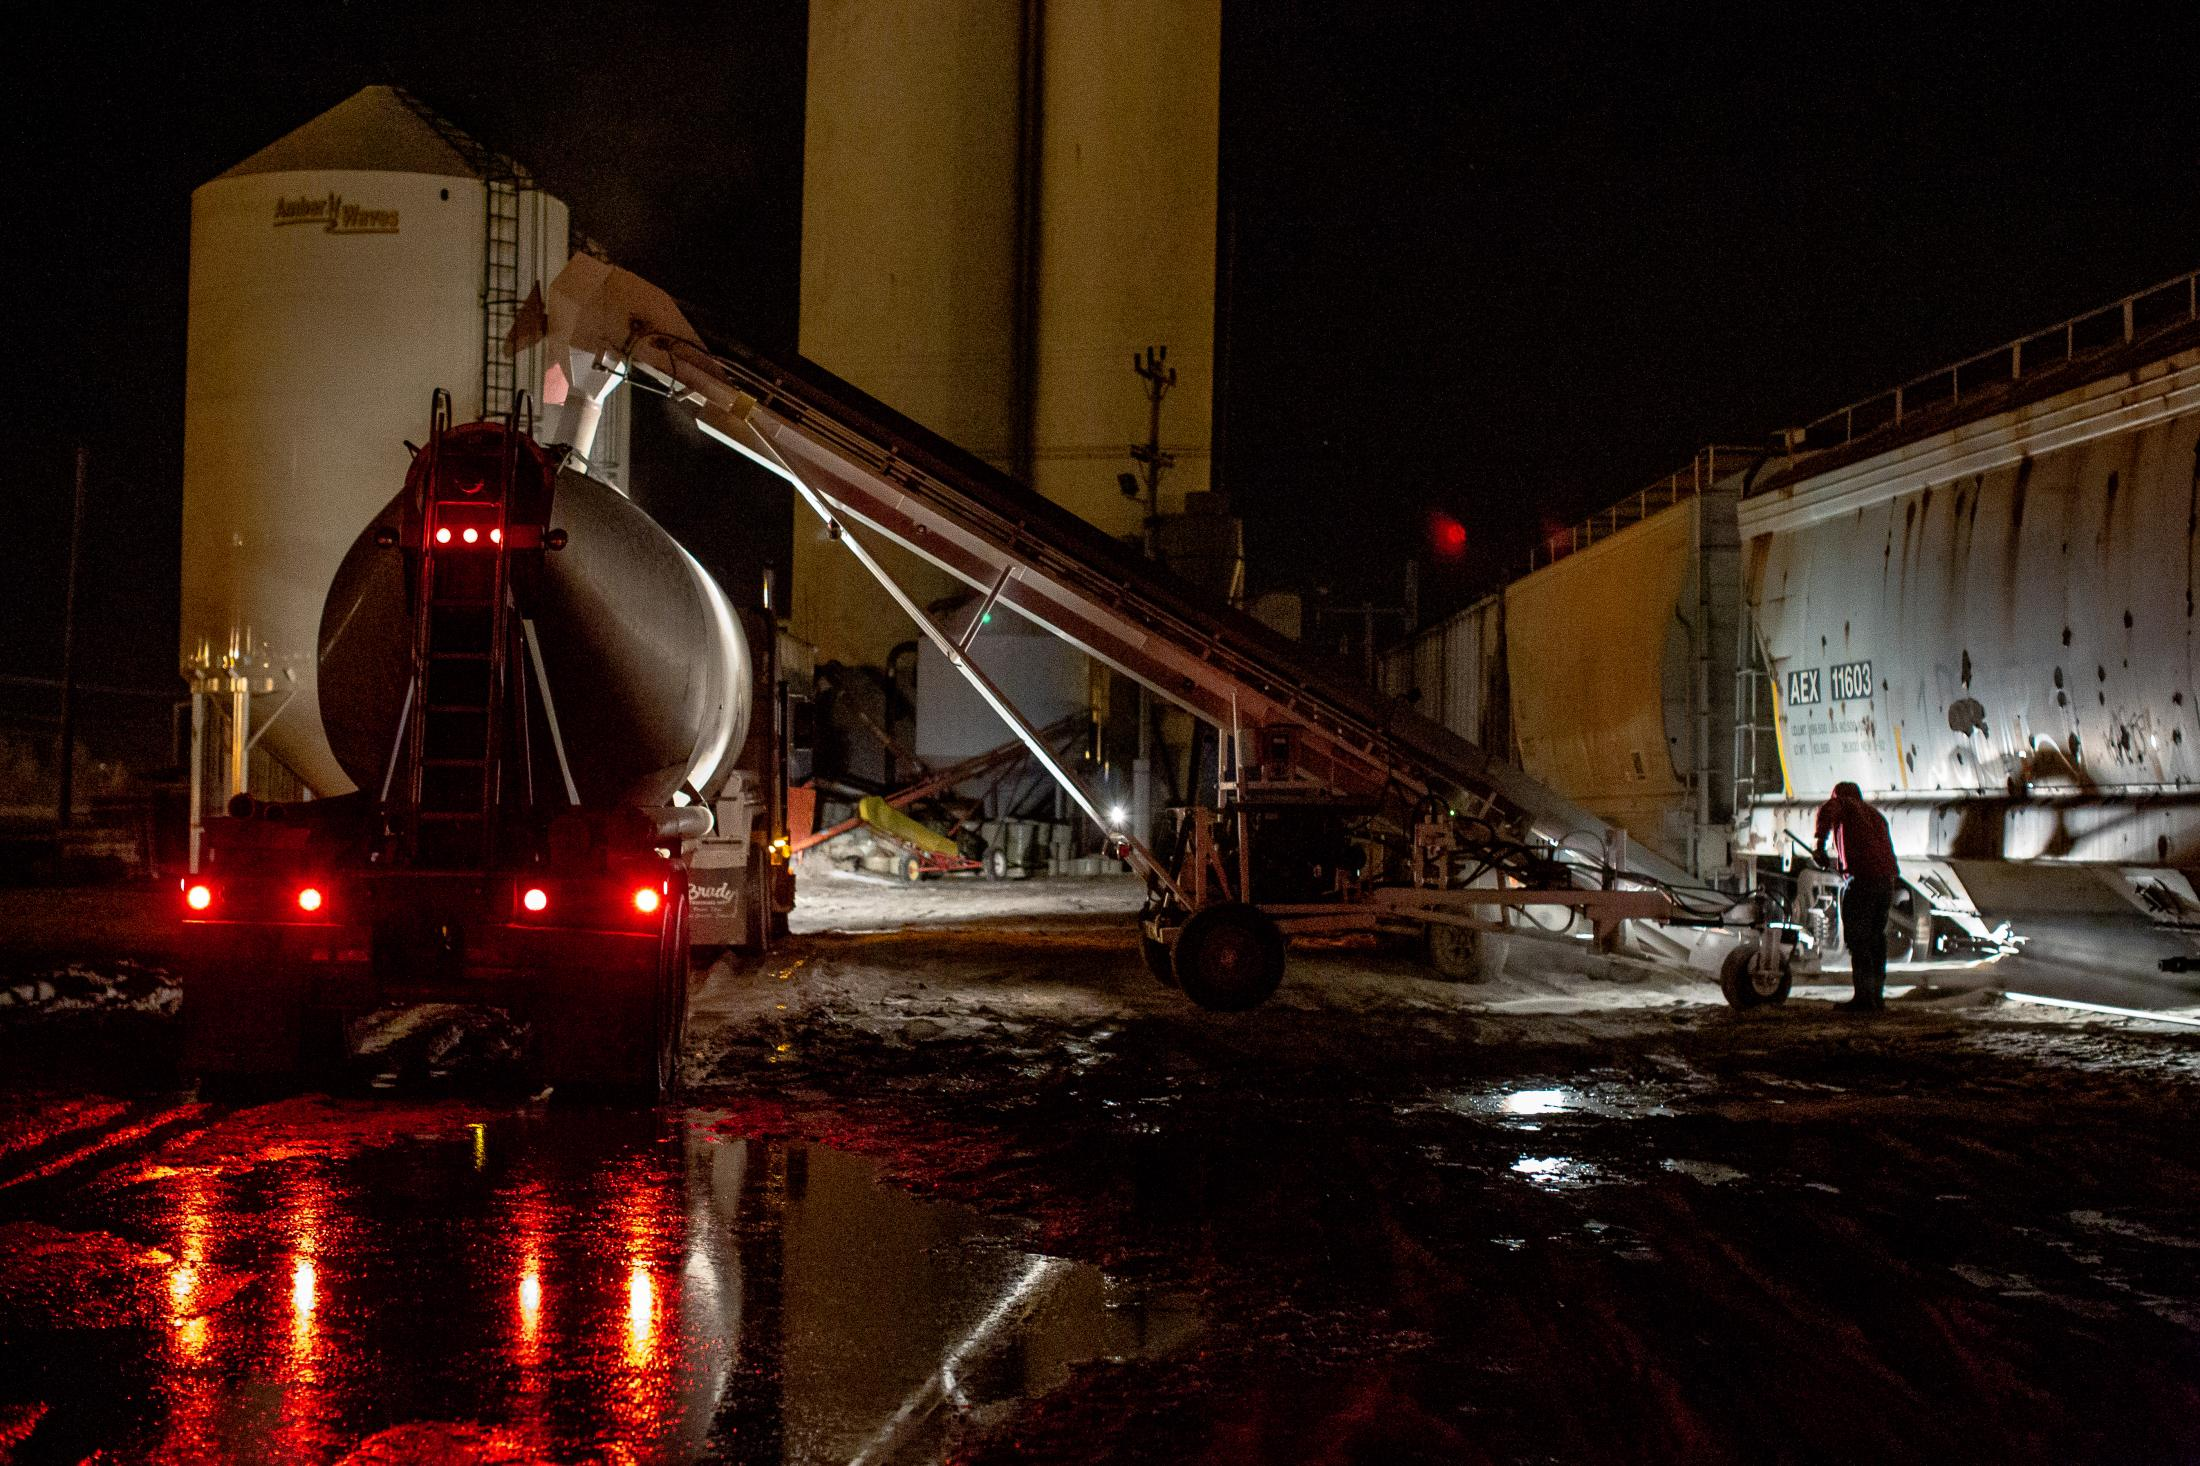 4/3/14- North Dakota - Adam Braum opens a railcar hatch with thousands of pounds of frac sand. The frac sand is then sent up a conveyor belt and poured into the truck. During the winter months, railcar hatches can freeze and the sand inside as well. Workers are instructed to use a wheat burner to defrost the hatch.